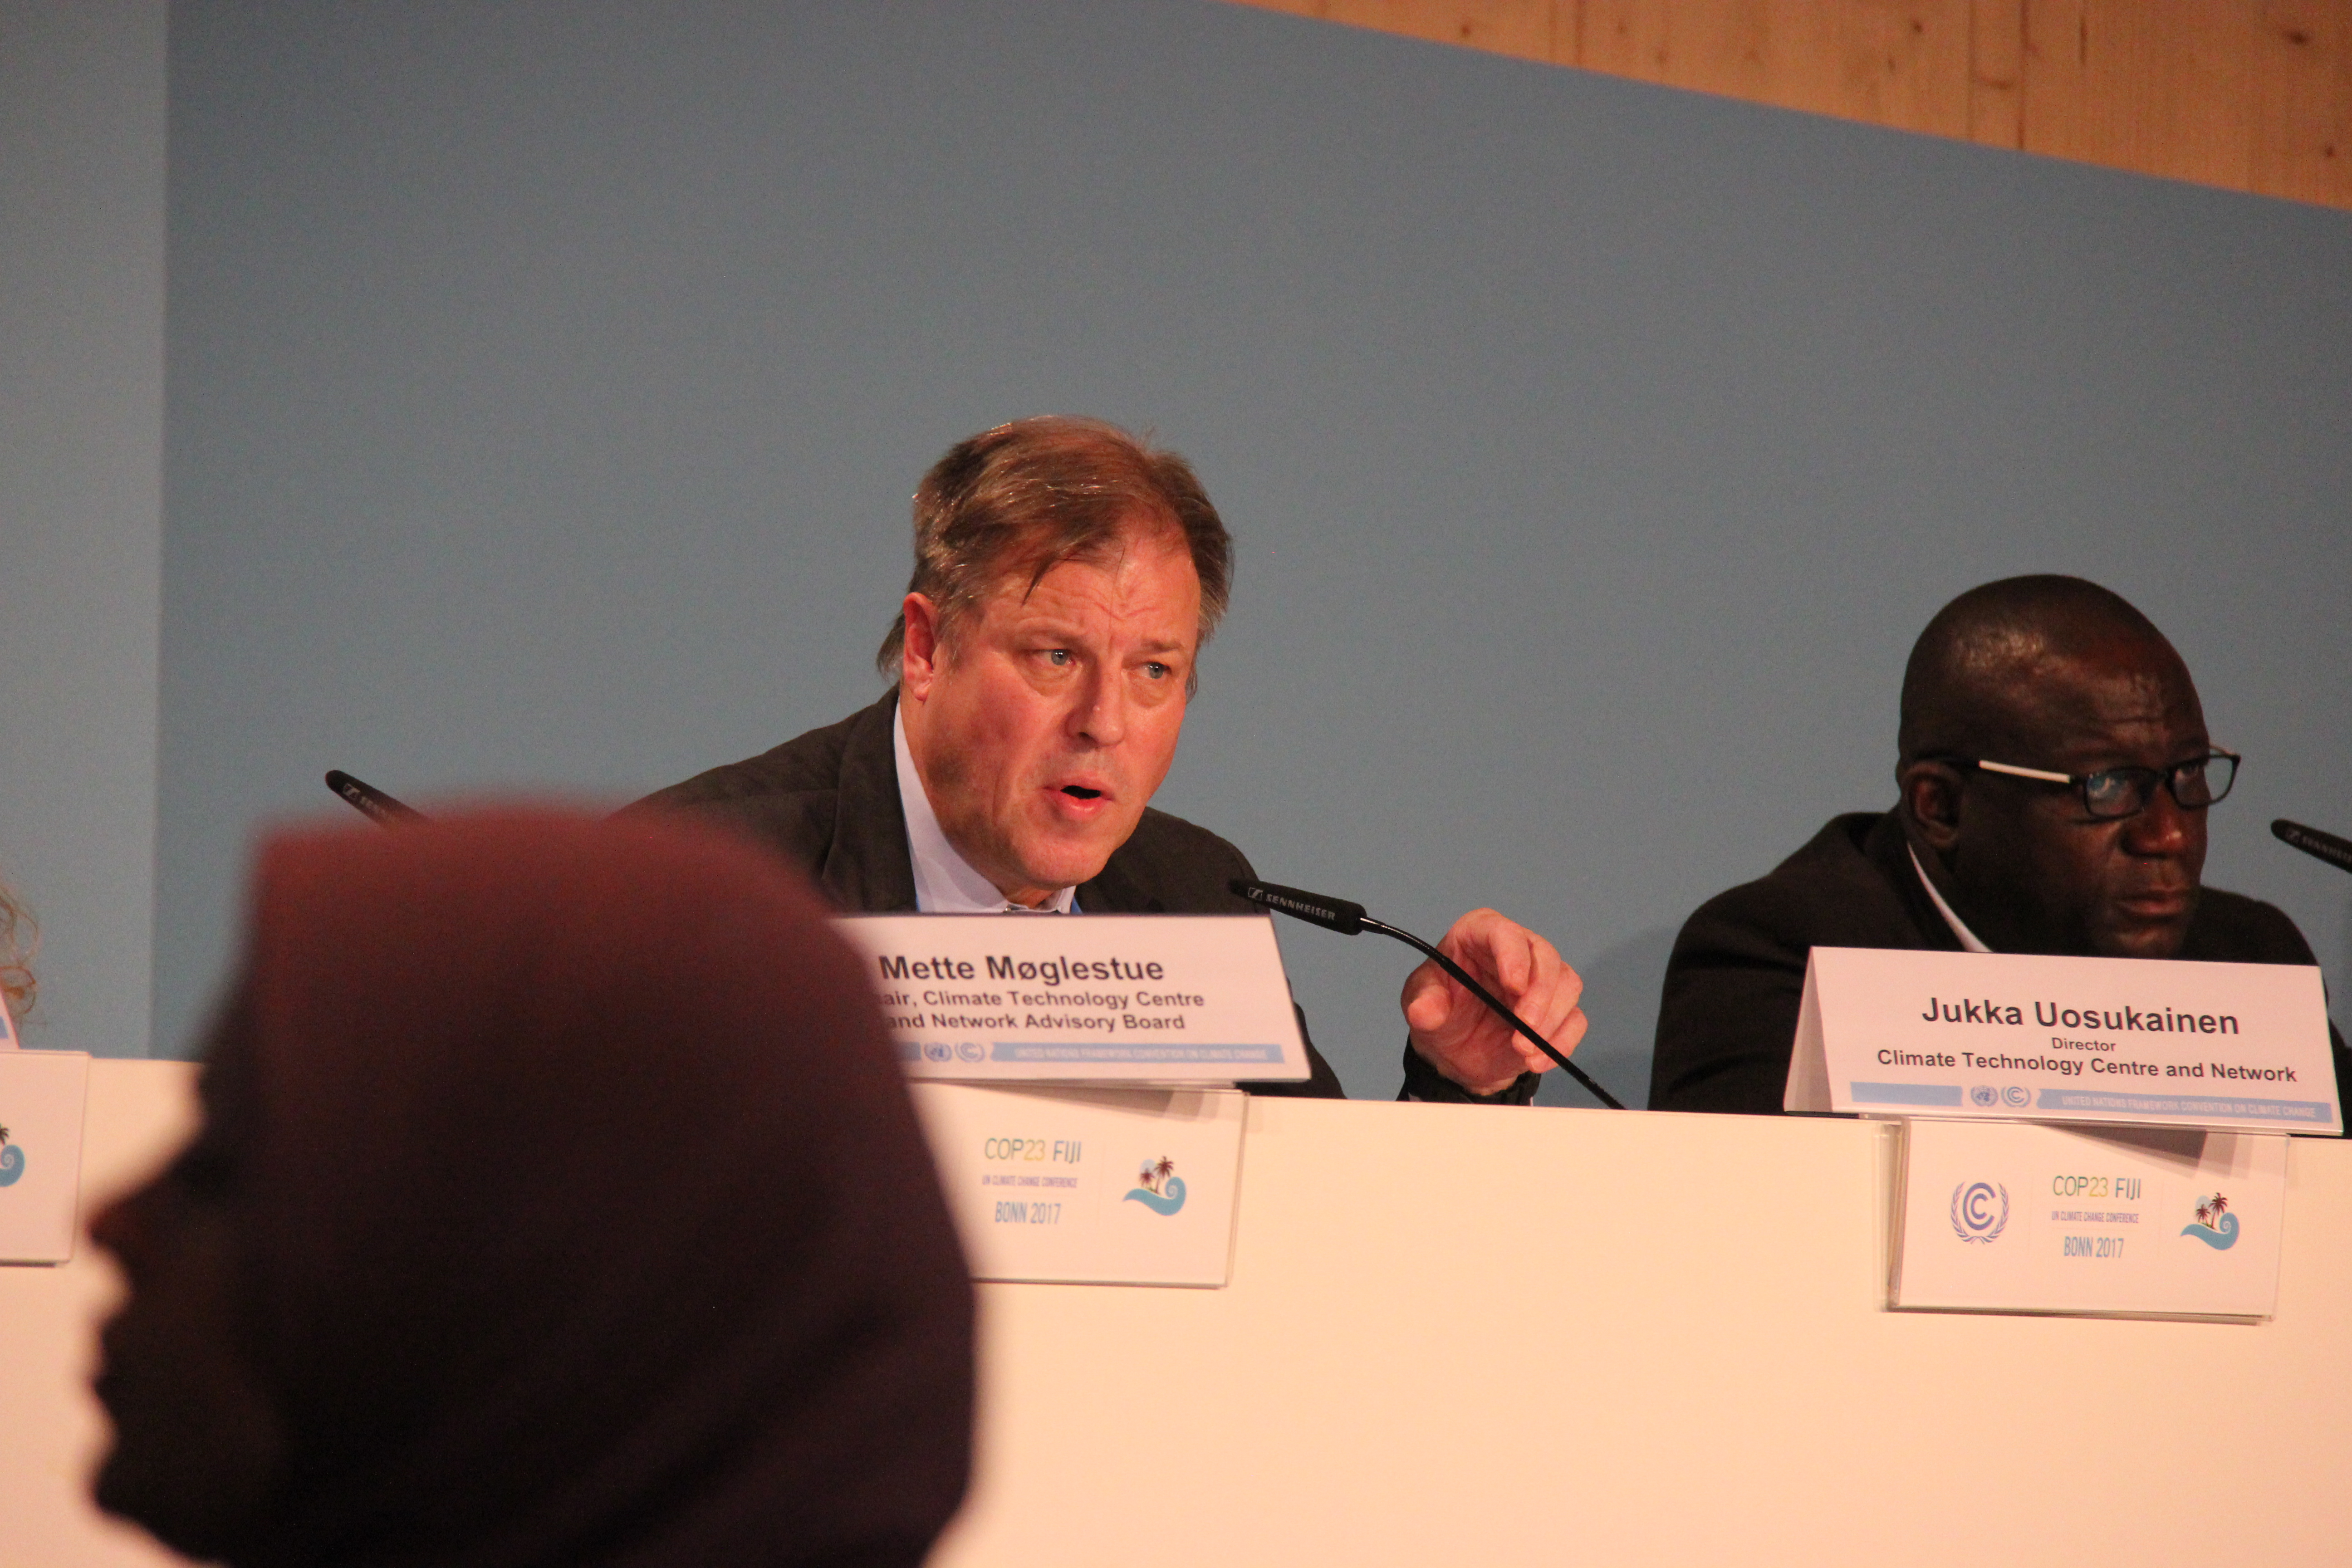 jukka-uosukainen-director-of-the-climate-technology-centre-and-network_26640748799_o.jpg